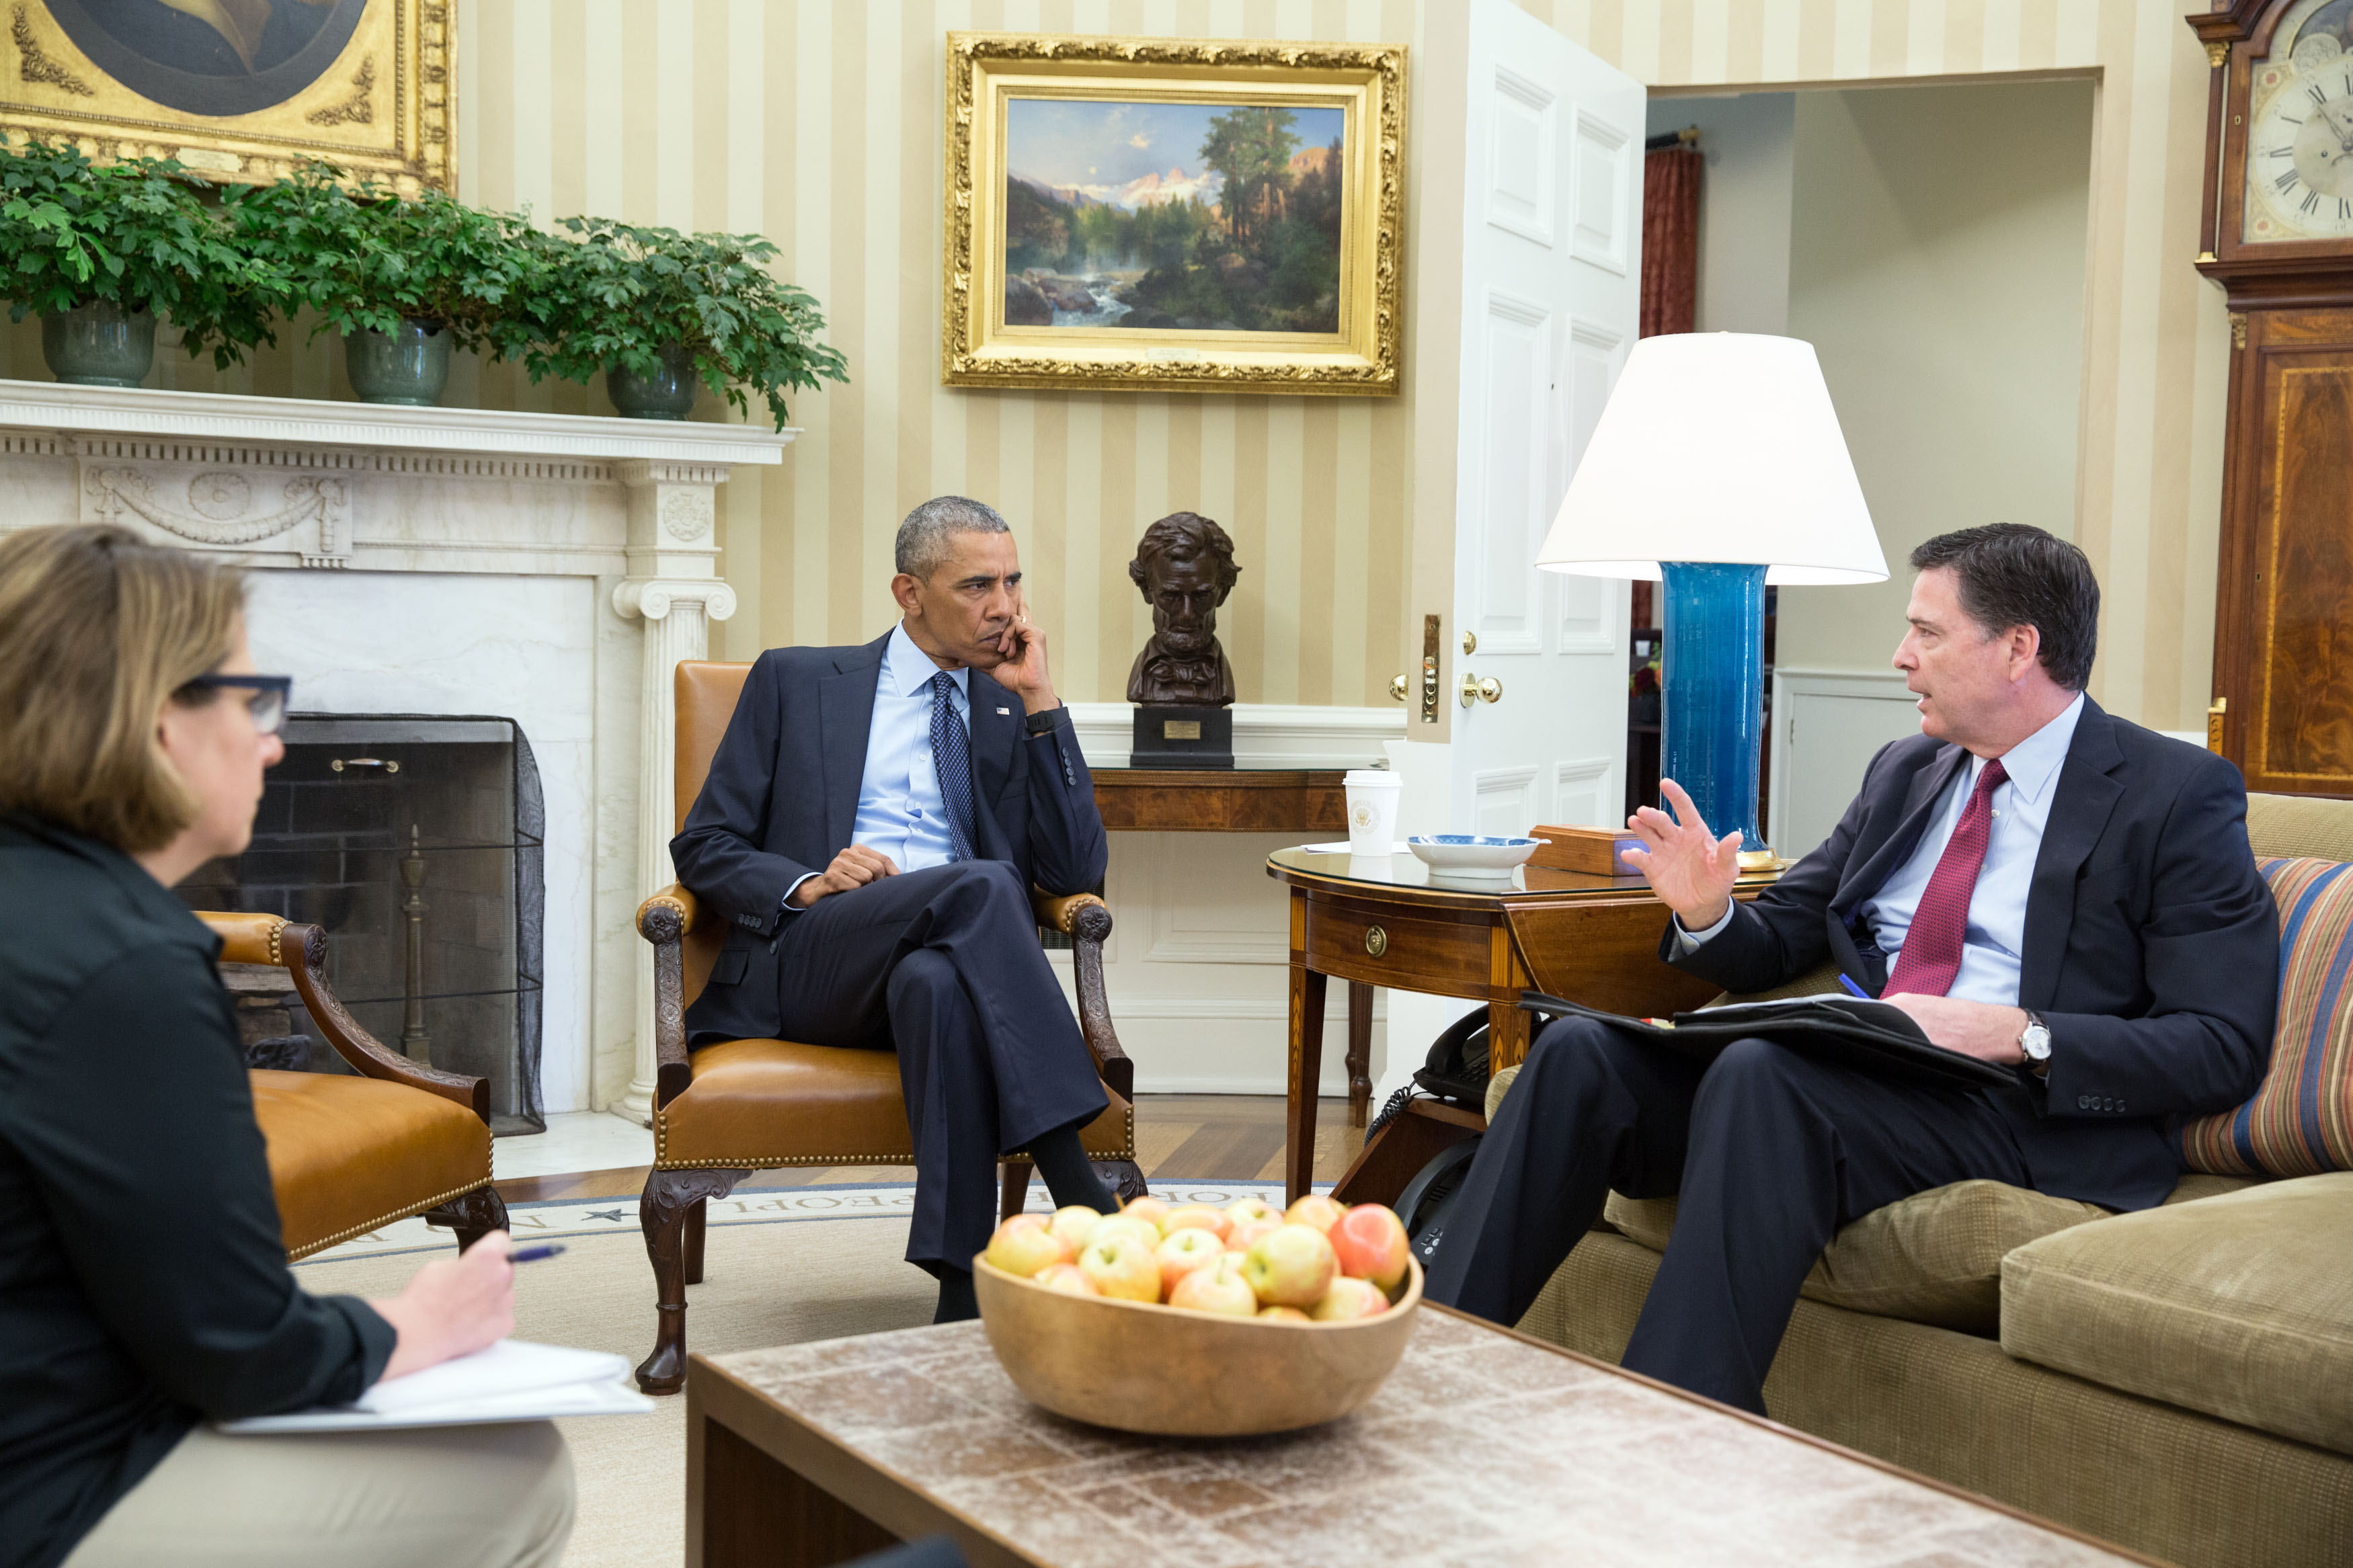 President Obama receives an update in the Oval Office from FBI Director Comey and Homeland Security Advisor Lisa Monaco on the 2016 Orlando nightclub shooting, June 12, 2016